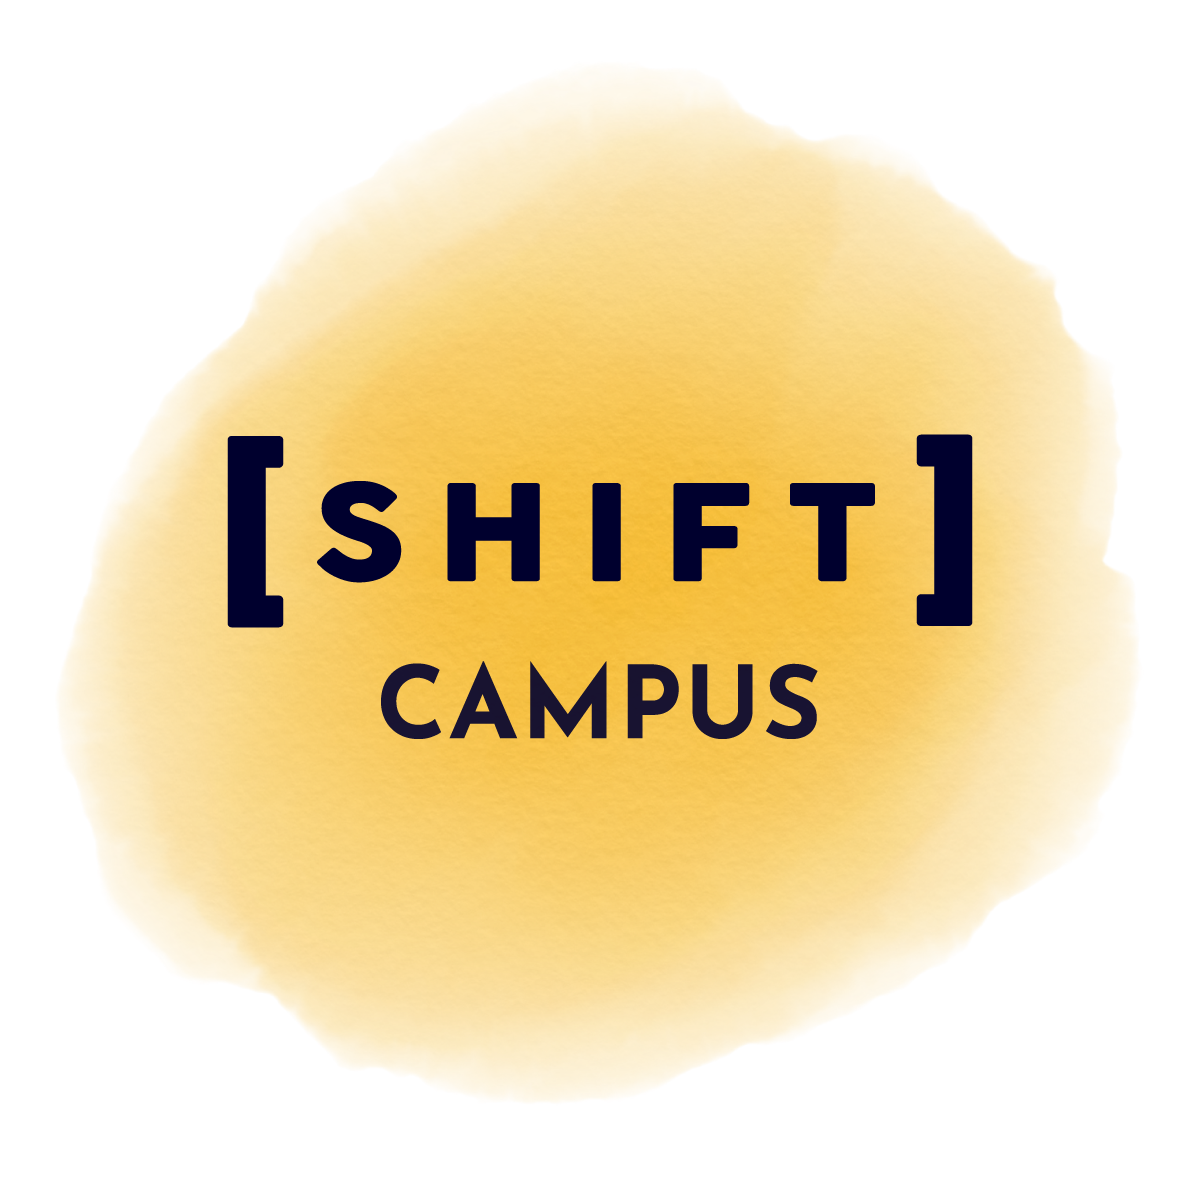 Shift-Campus.png